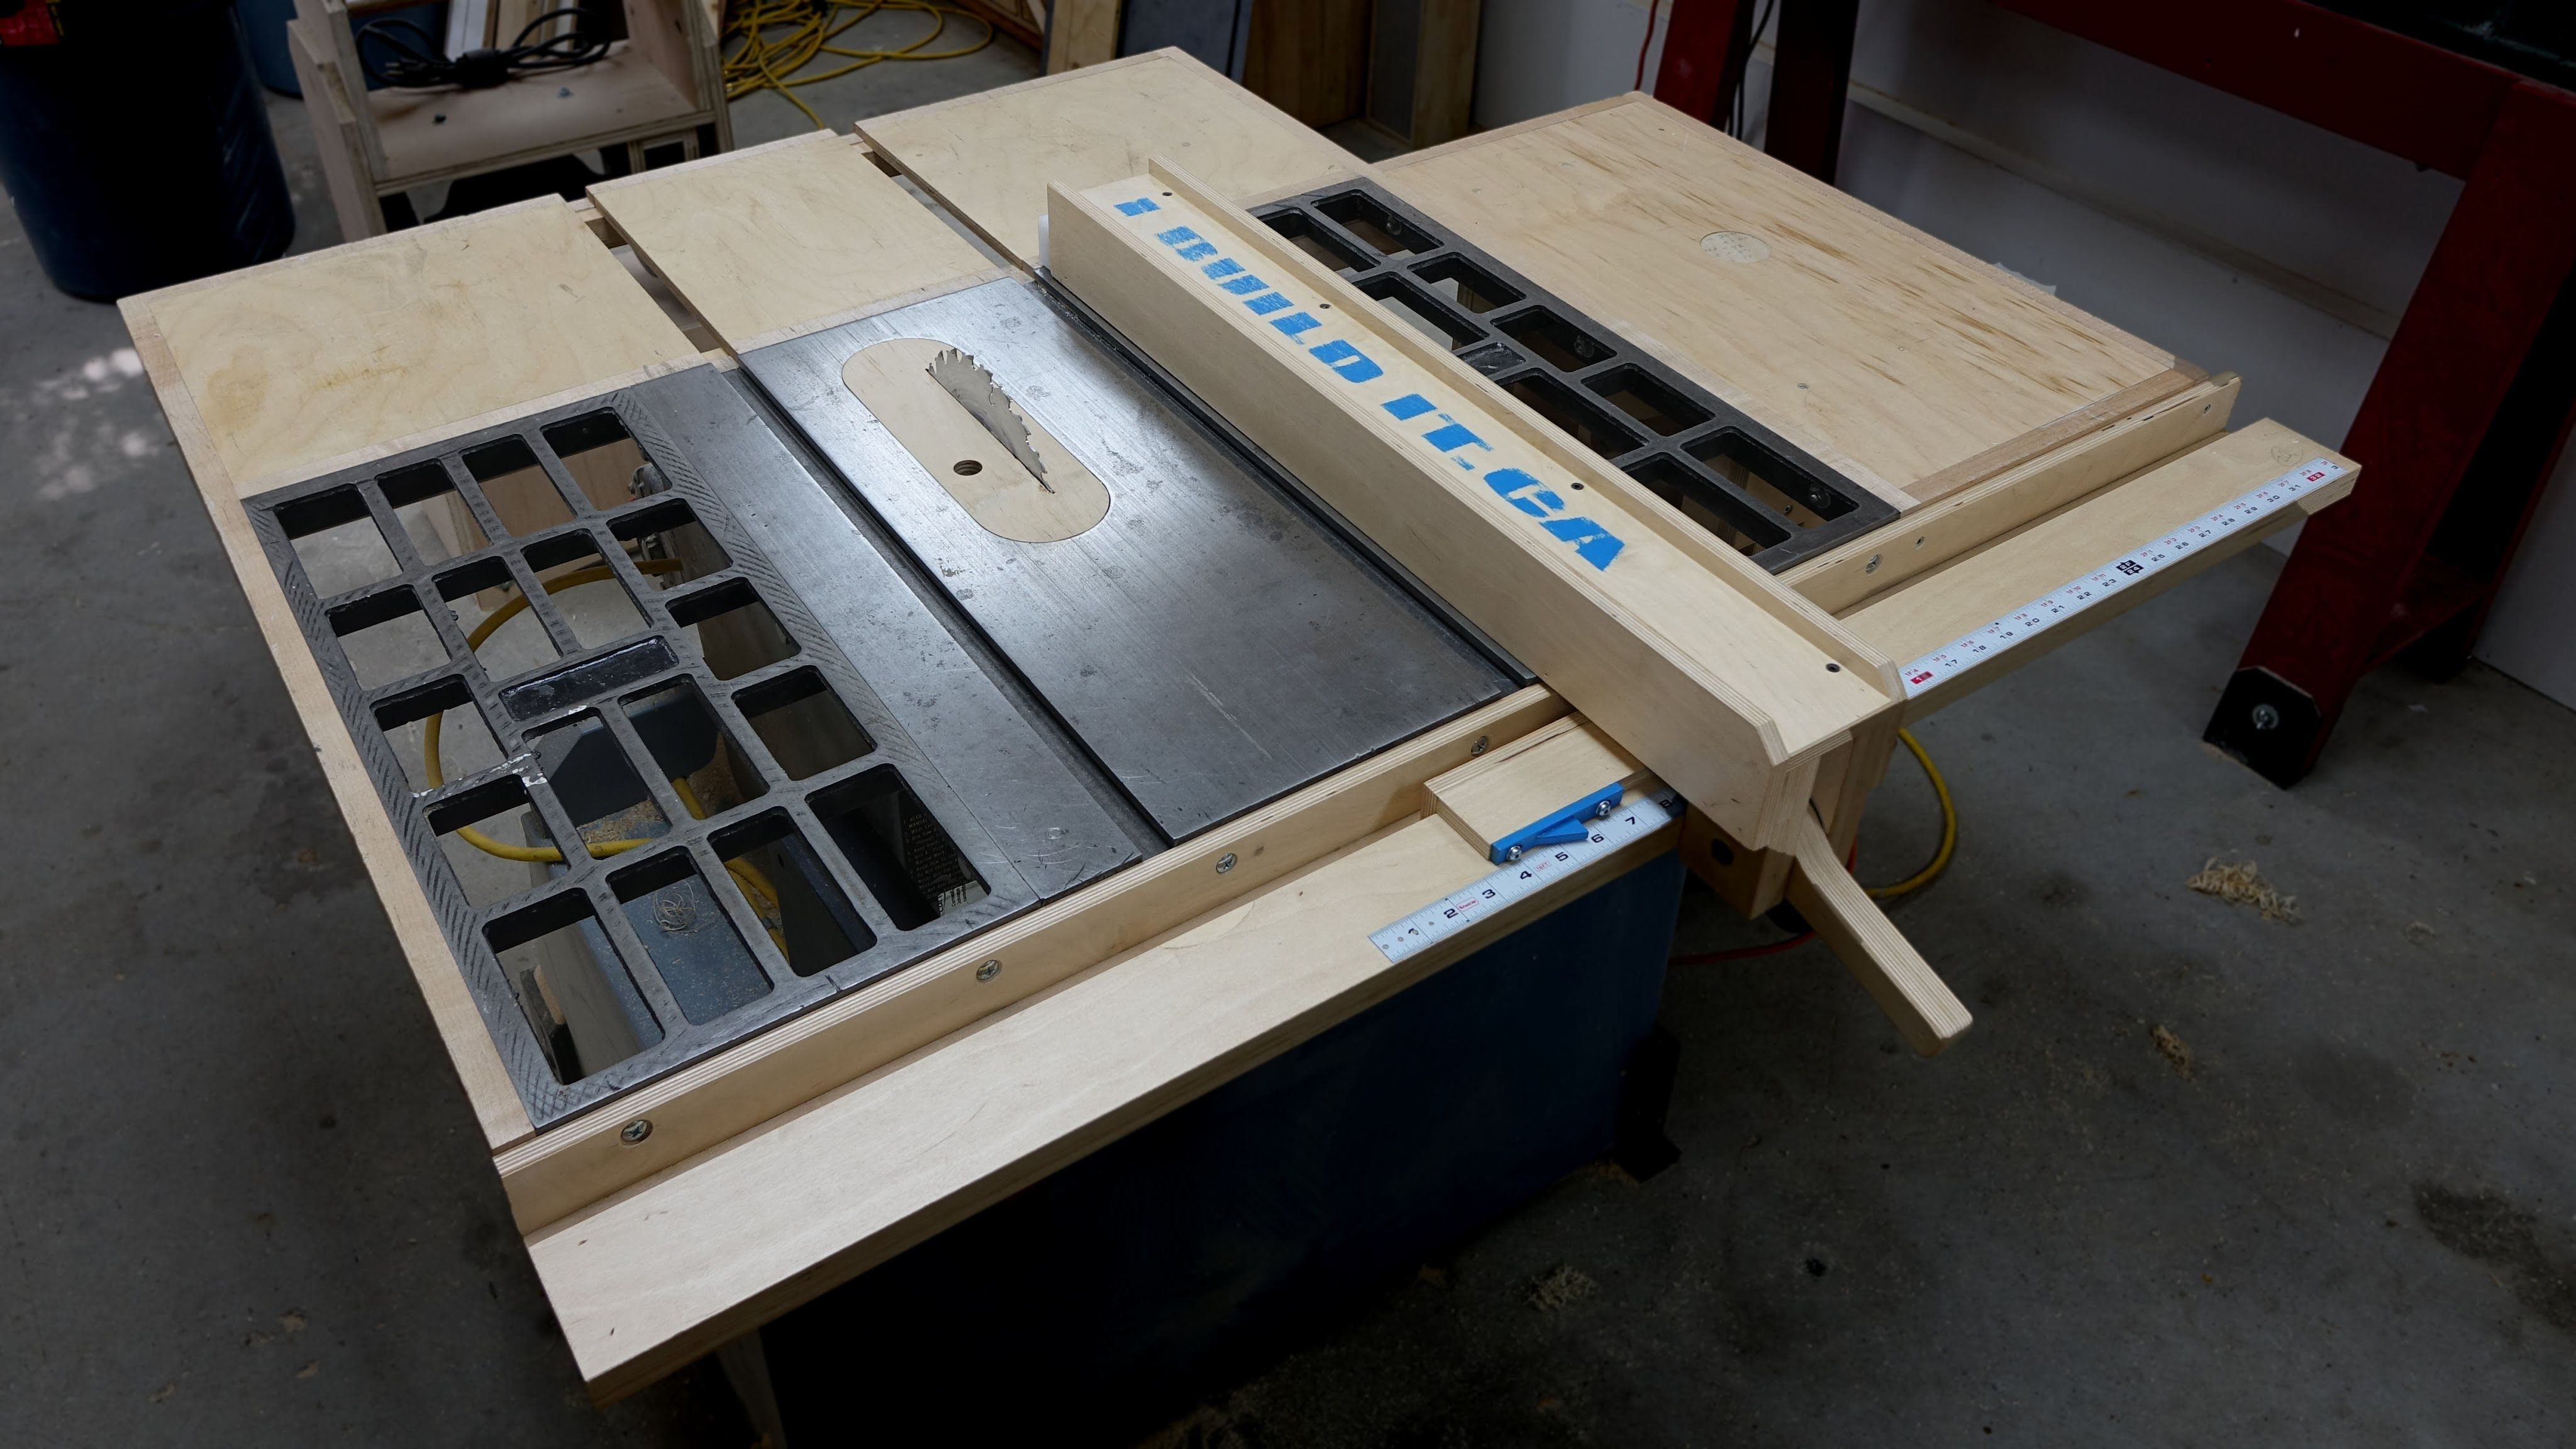 Installing the wooden table saw fence john heisz pinterest installing the wooden table saw fence keyboard keysfo Choice Image